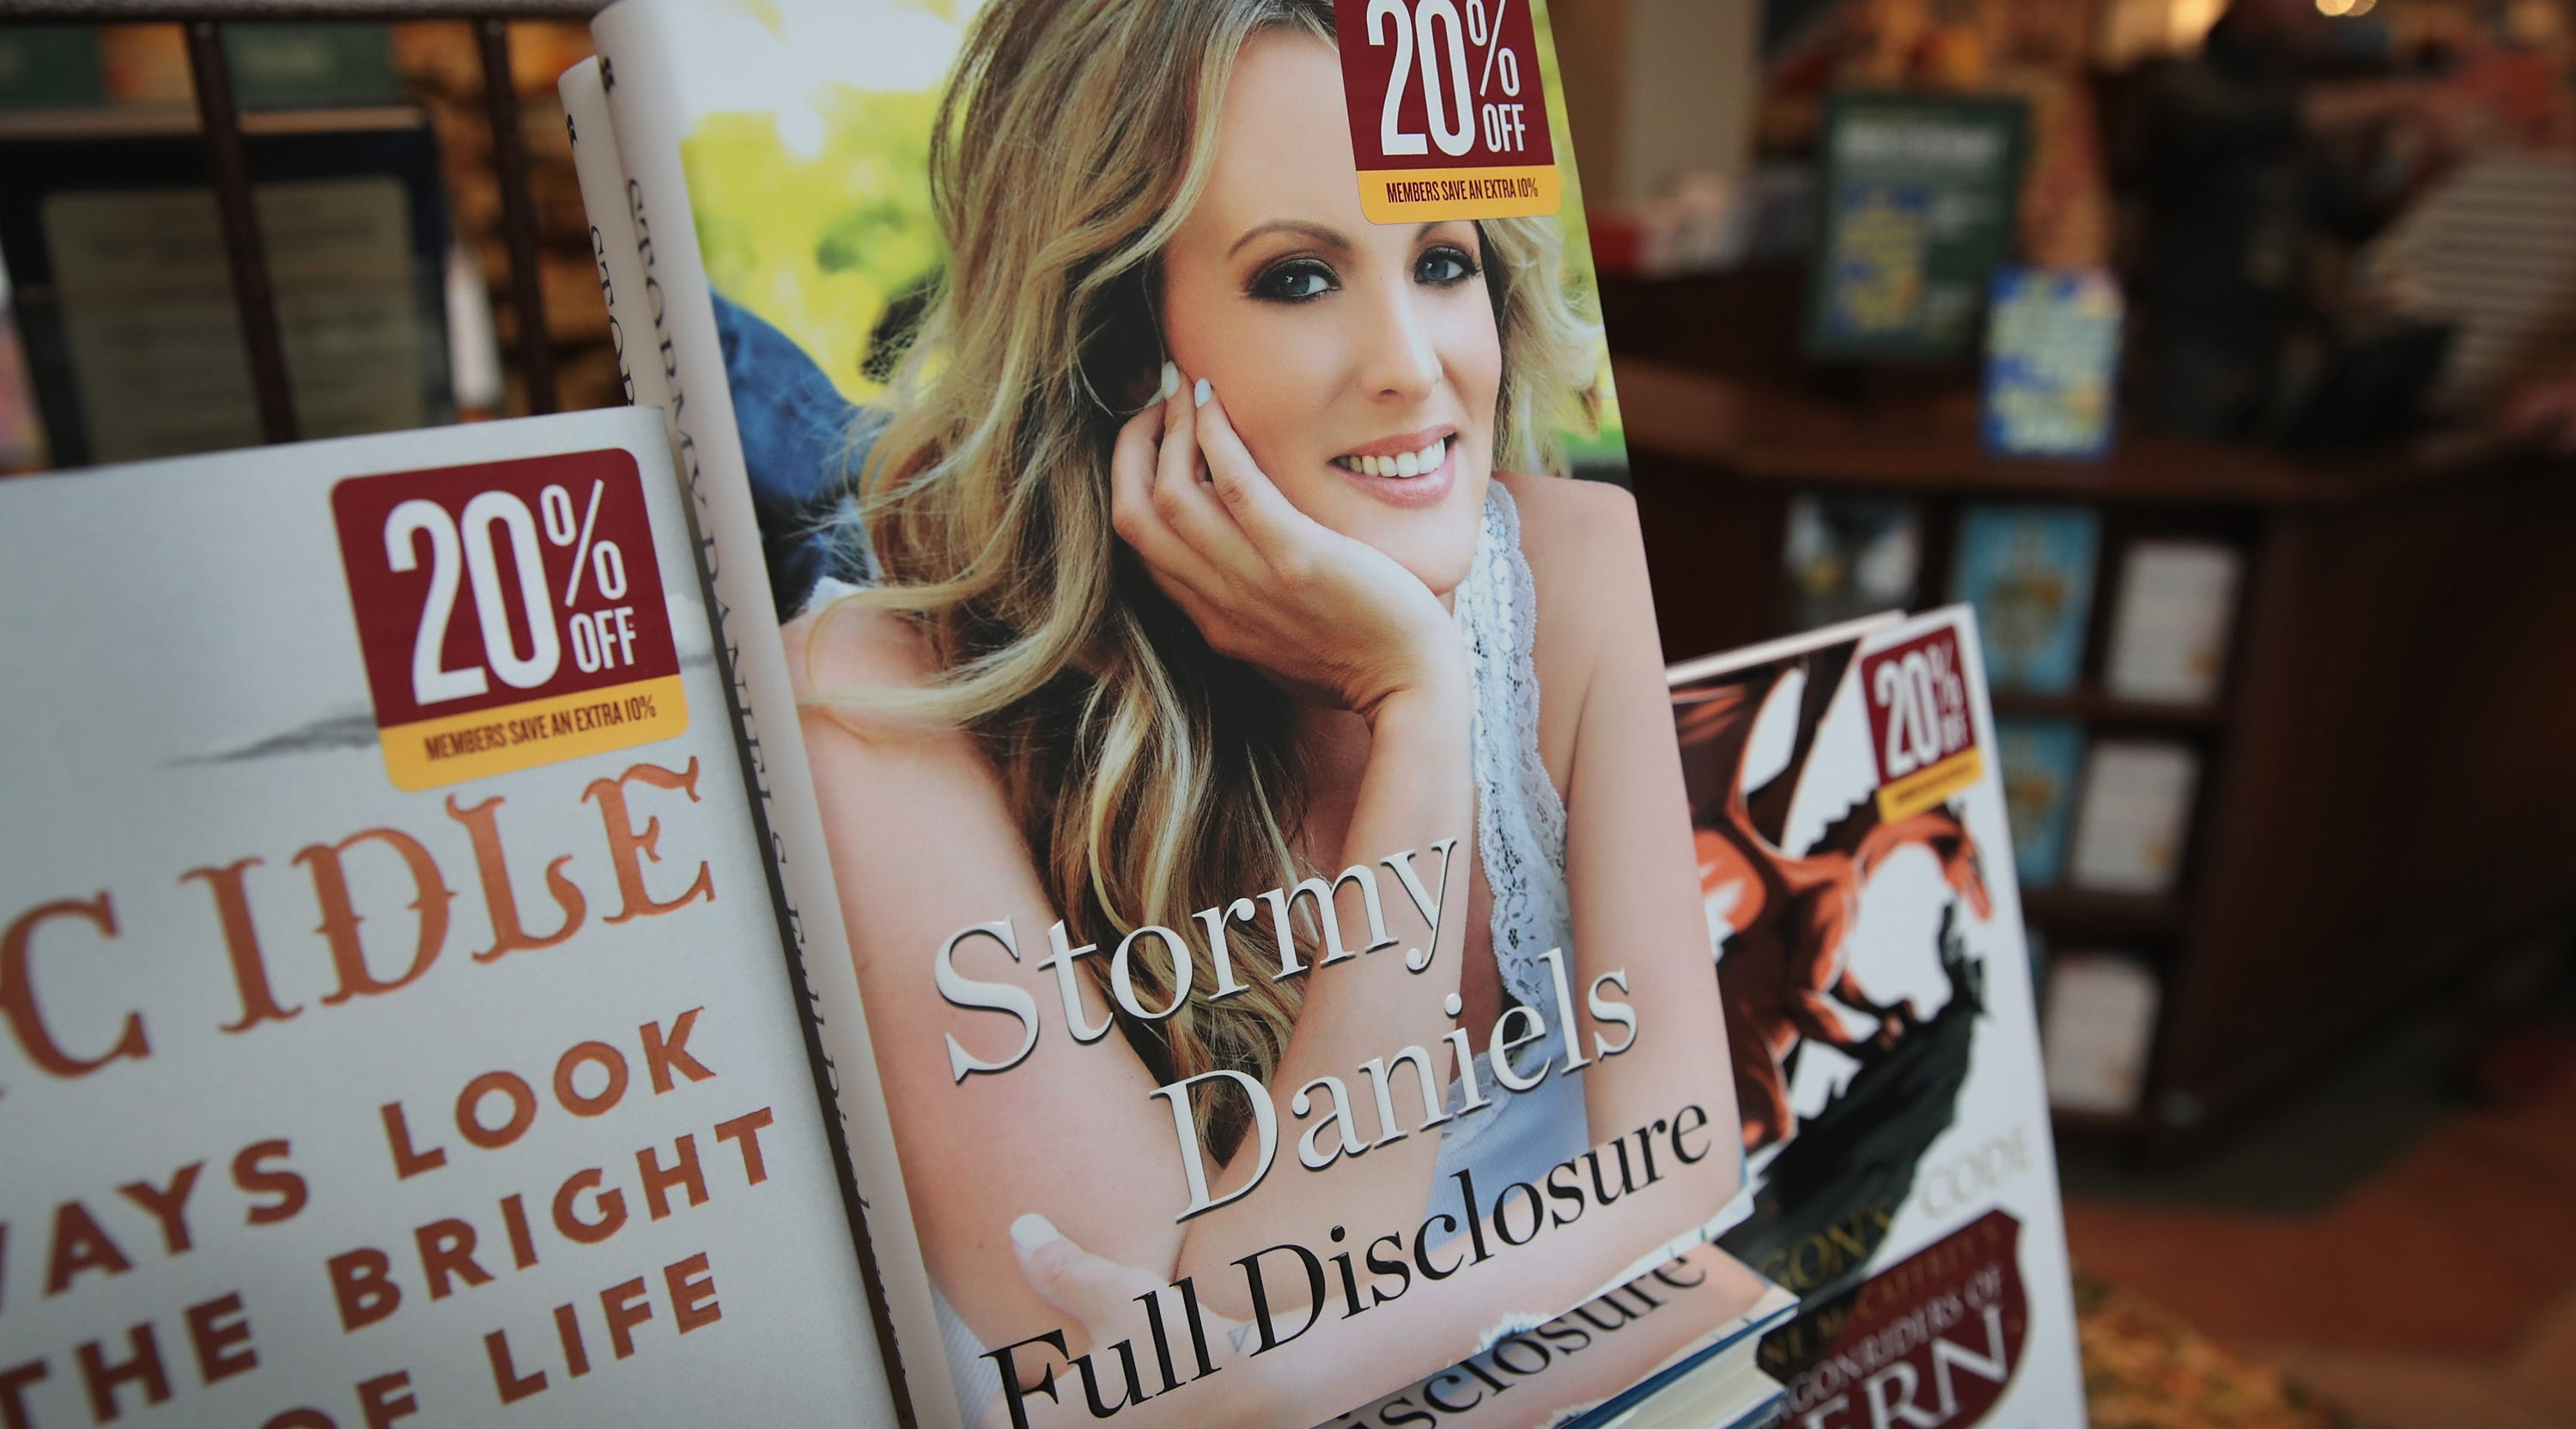 """Full Disclosure,"" a memoir by adult film star Stormy Daniels, is offered for sale at a Barnes & Noble store on Oct. 2, 2018, in Chicago."